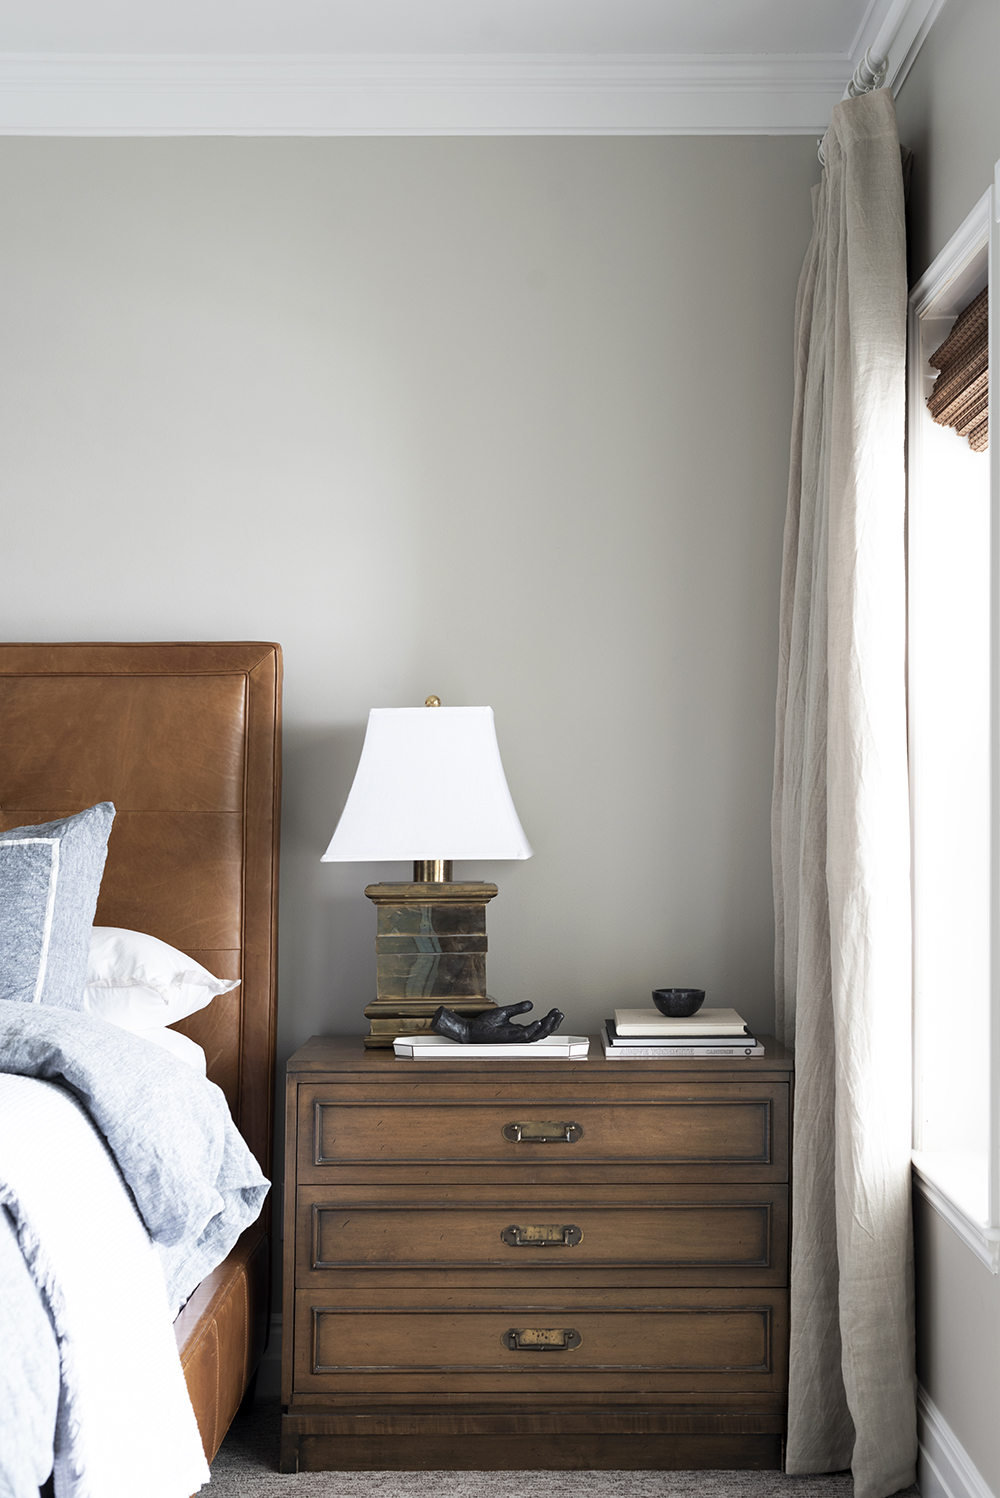 How to Install Casual Linen Drapery Panels - roomfortuesday.com